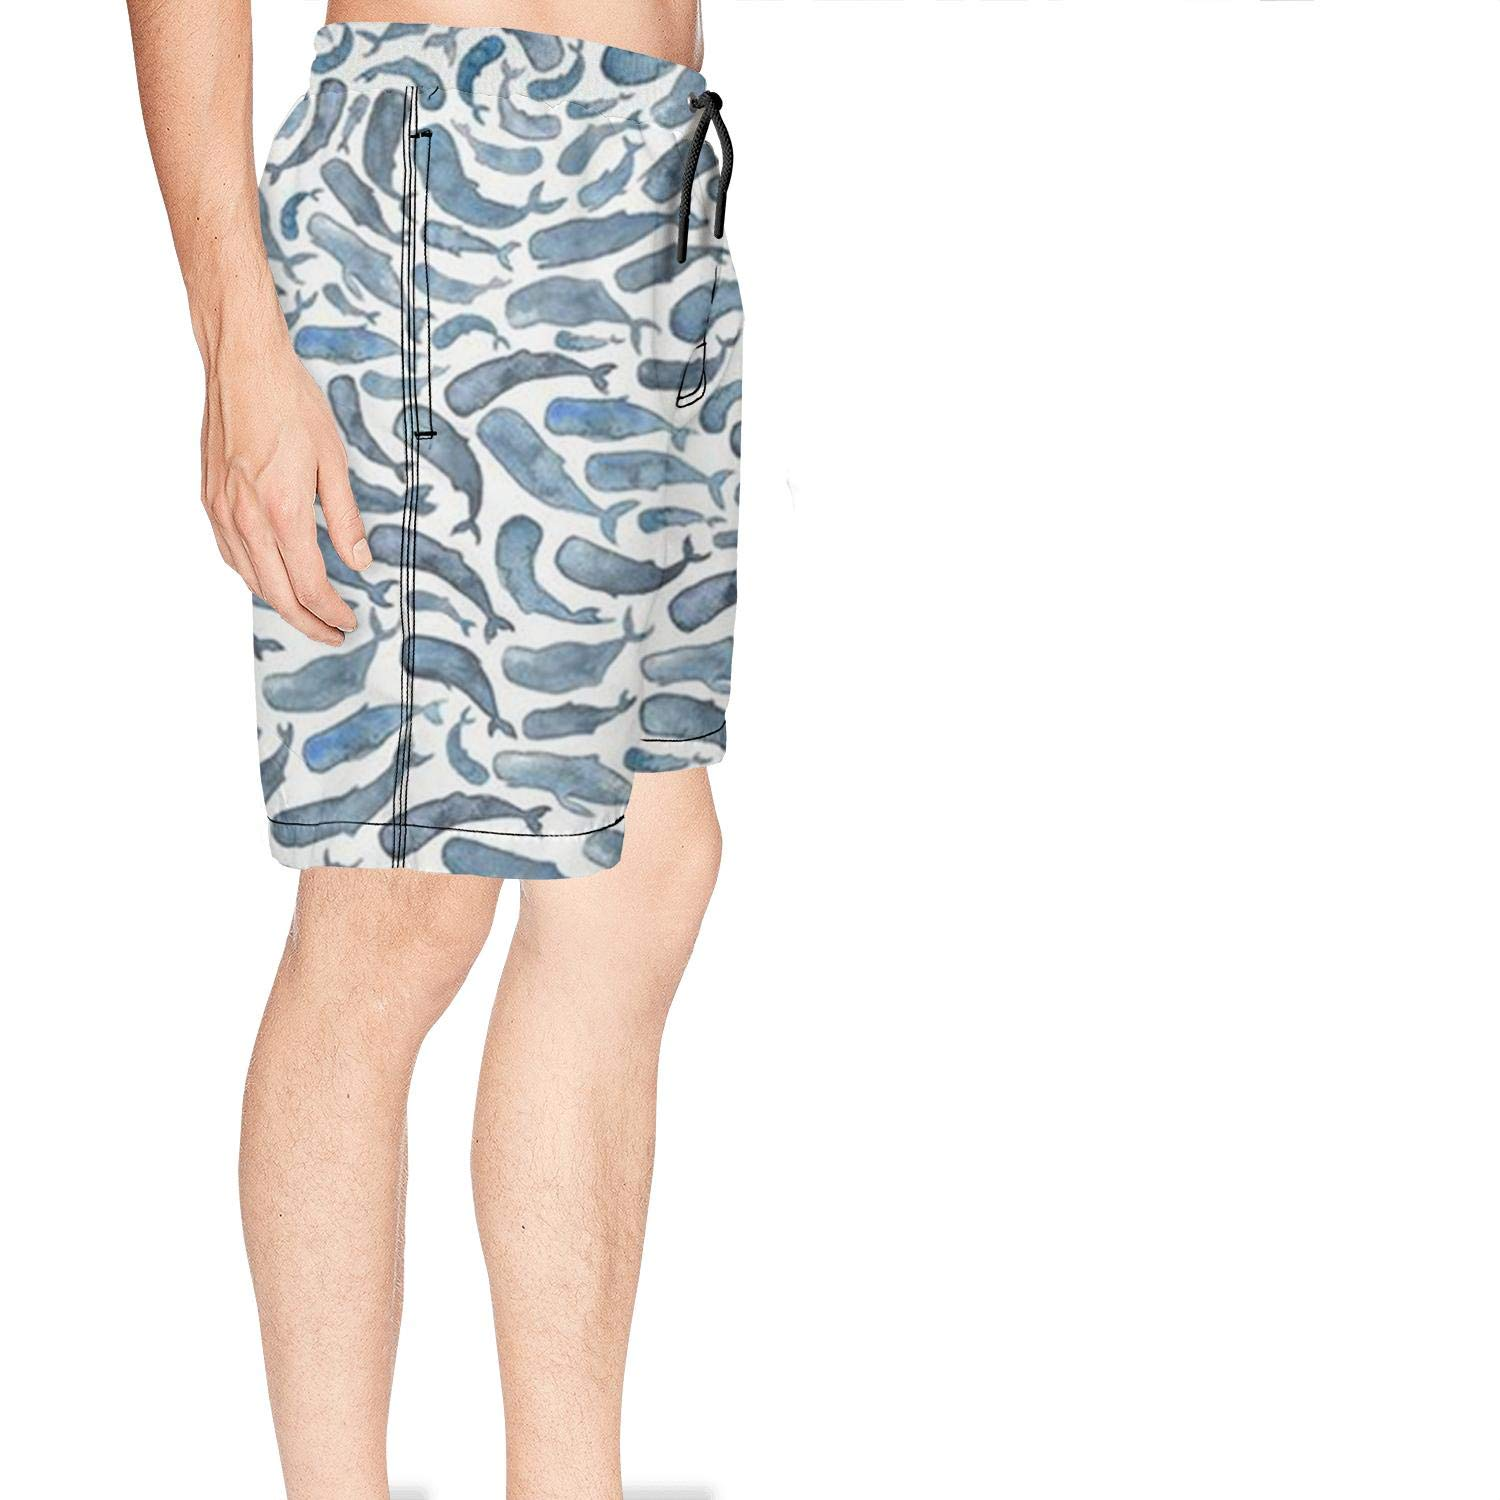 XULANG Mens for The Love of Whale Swim Trunks Jogging Skate Knee Length Boardshorts by XULANG (Image #3)